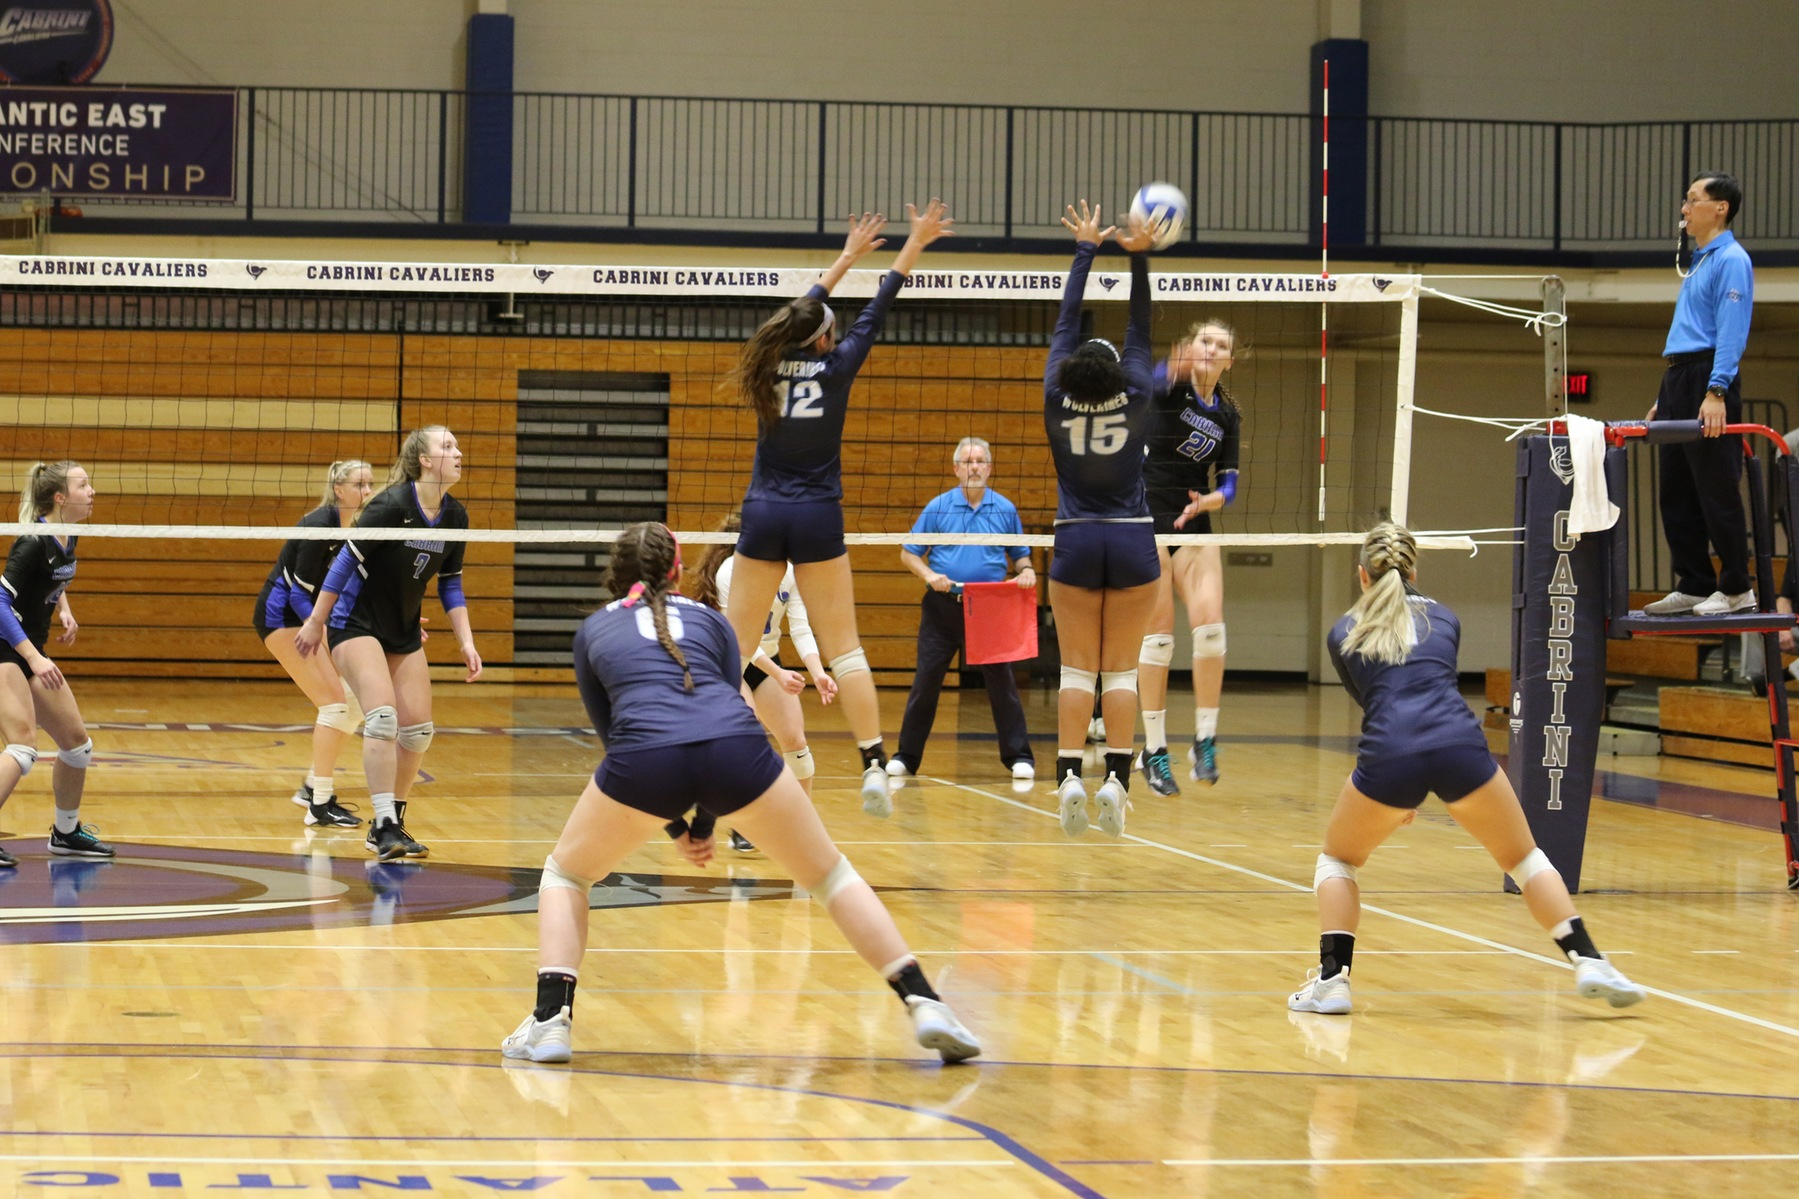 Volleyball Rallies but Falls Short to Cabrini, 1-3